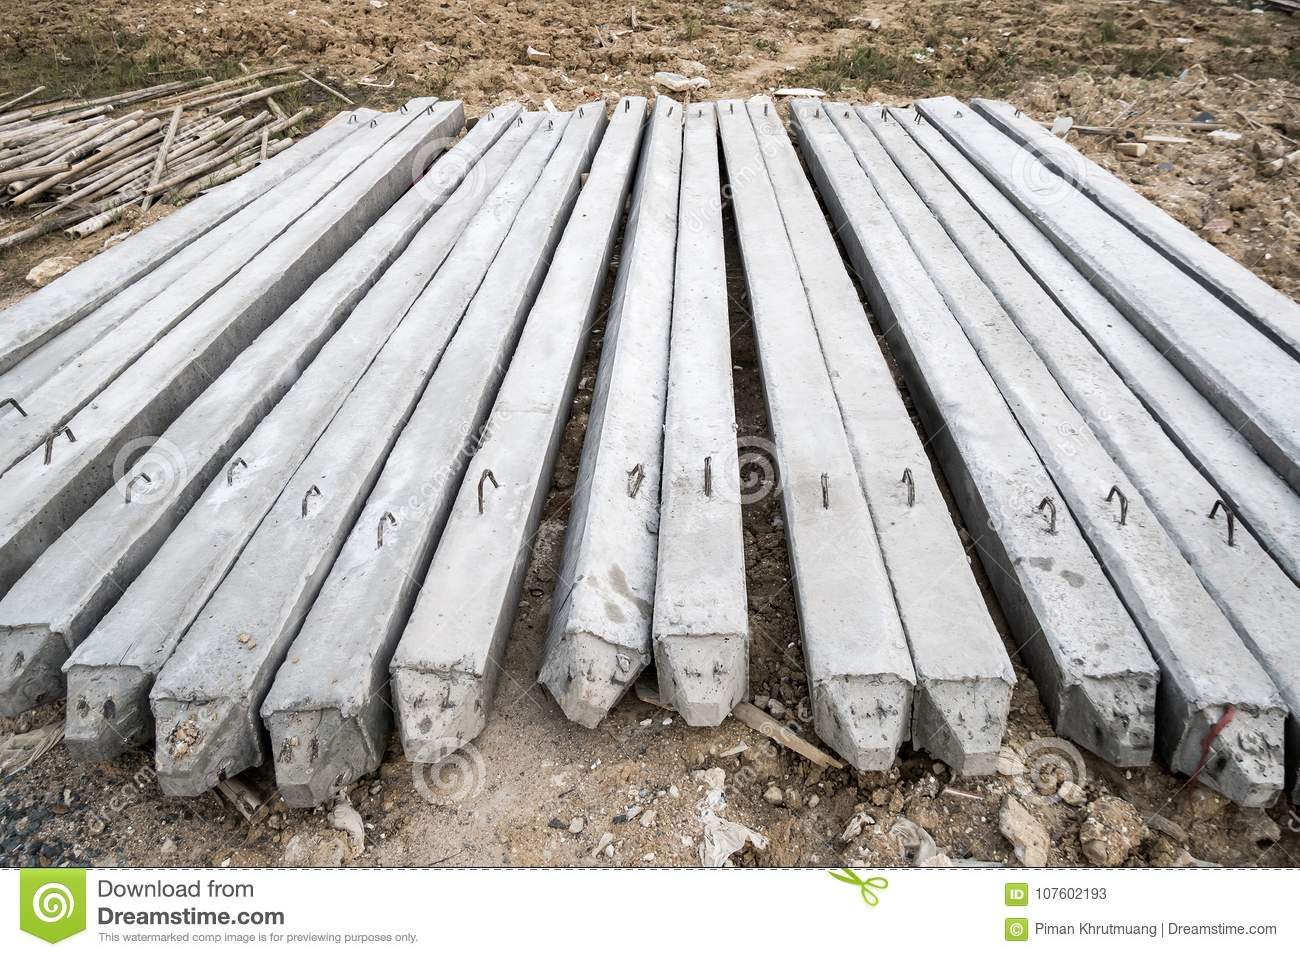 Concrete Piles On Ground For House Construction Stock Image - Image of  pole, building: 107602193